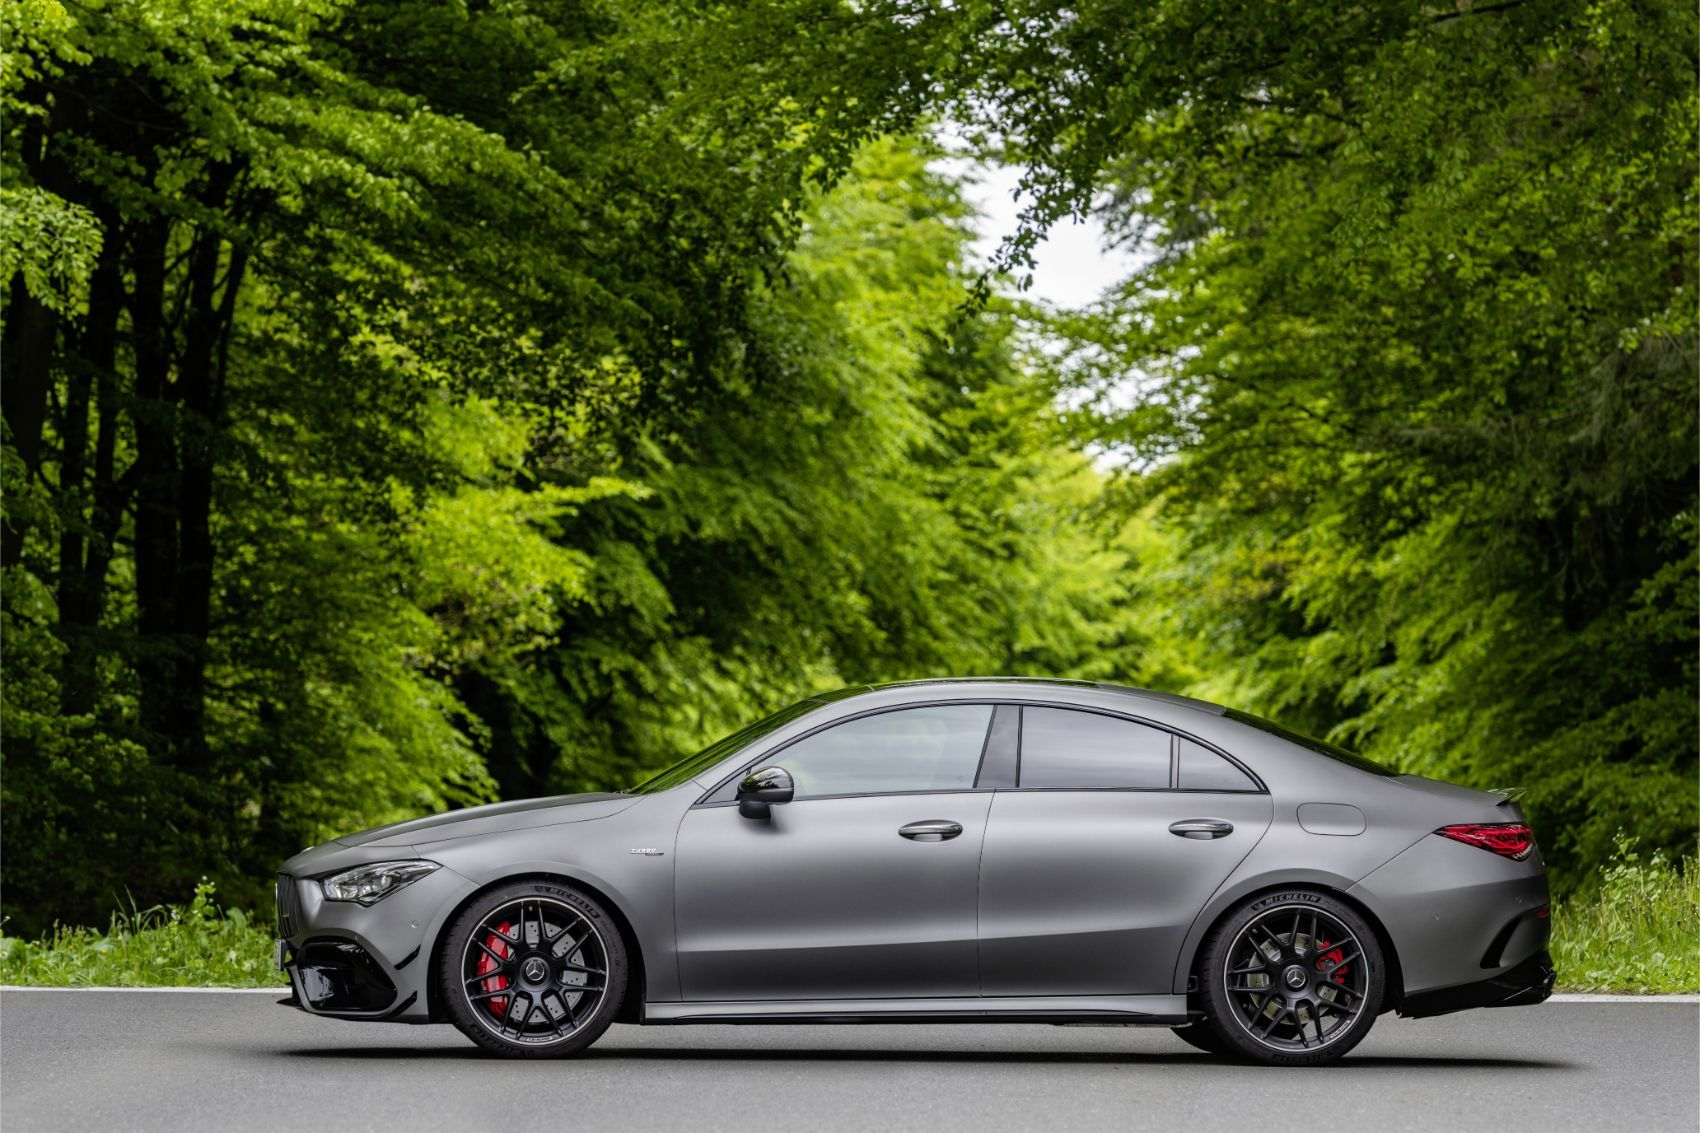 2020 mercedes amg cla 45 compact benz packs a mean punch. Black Bedroom Furniture Sets. Home Design Ideas